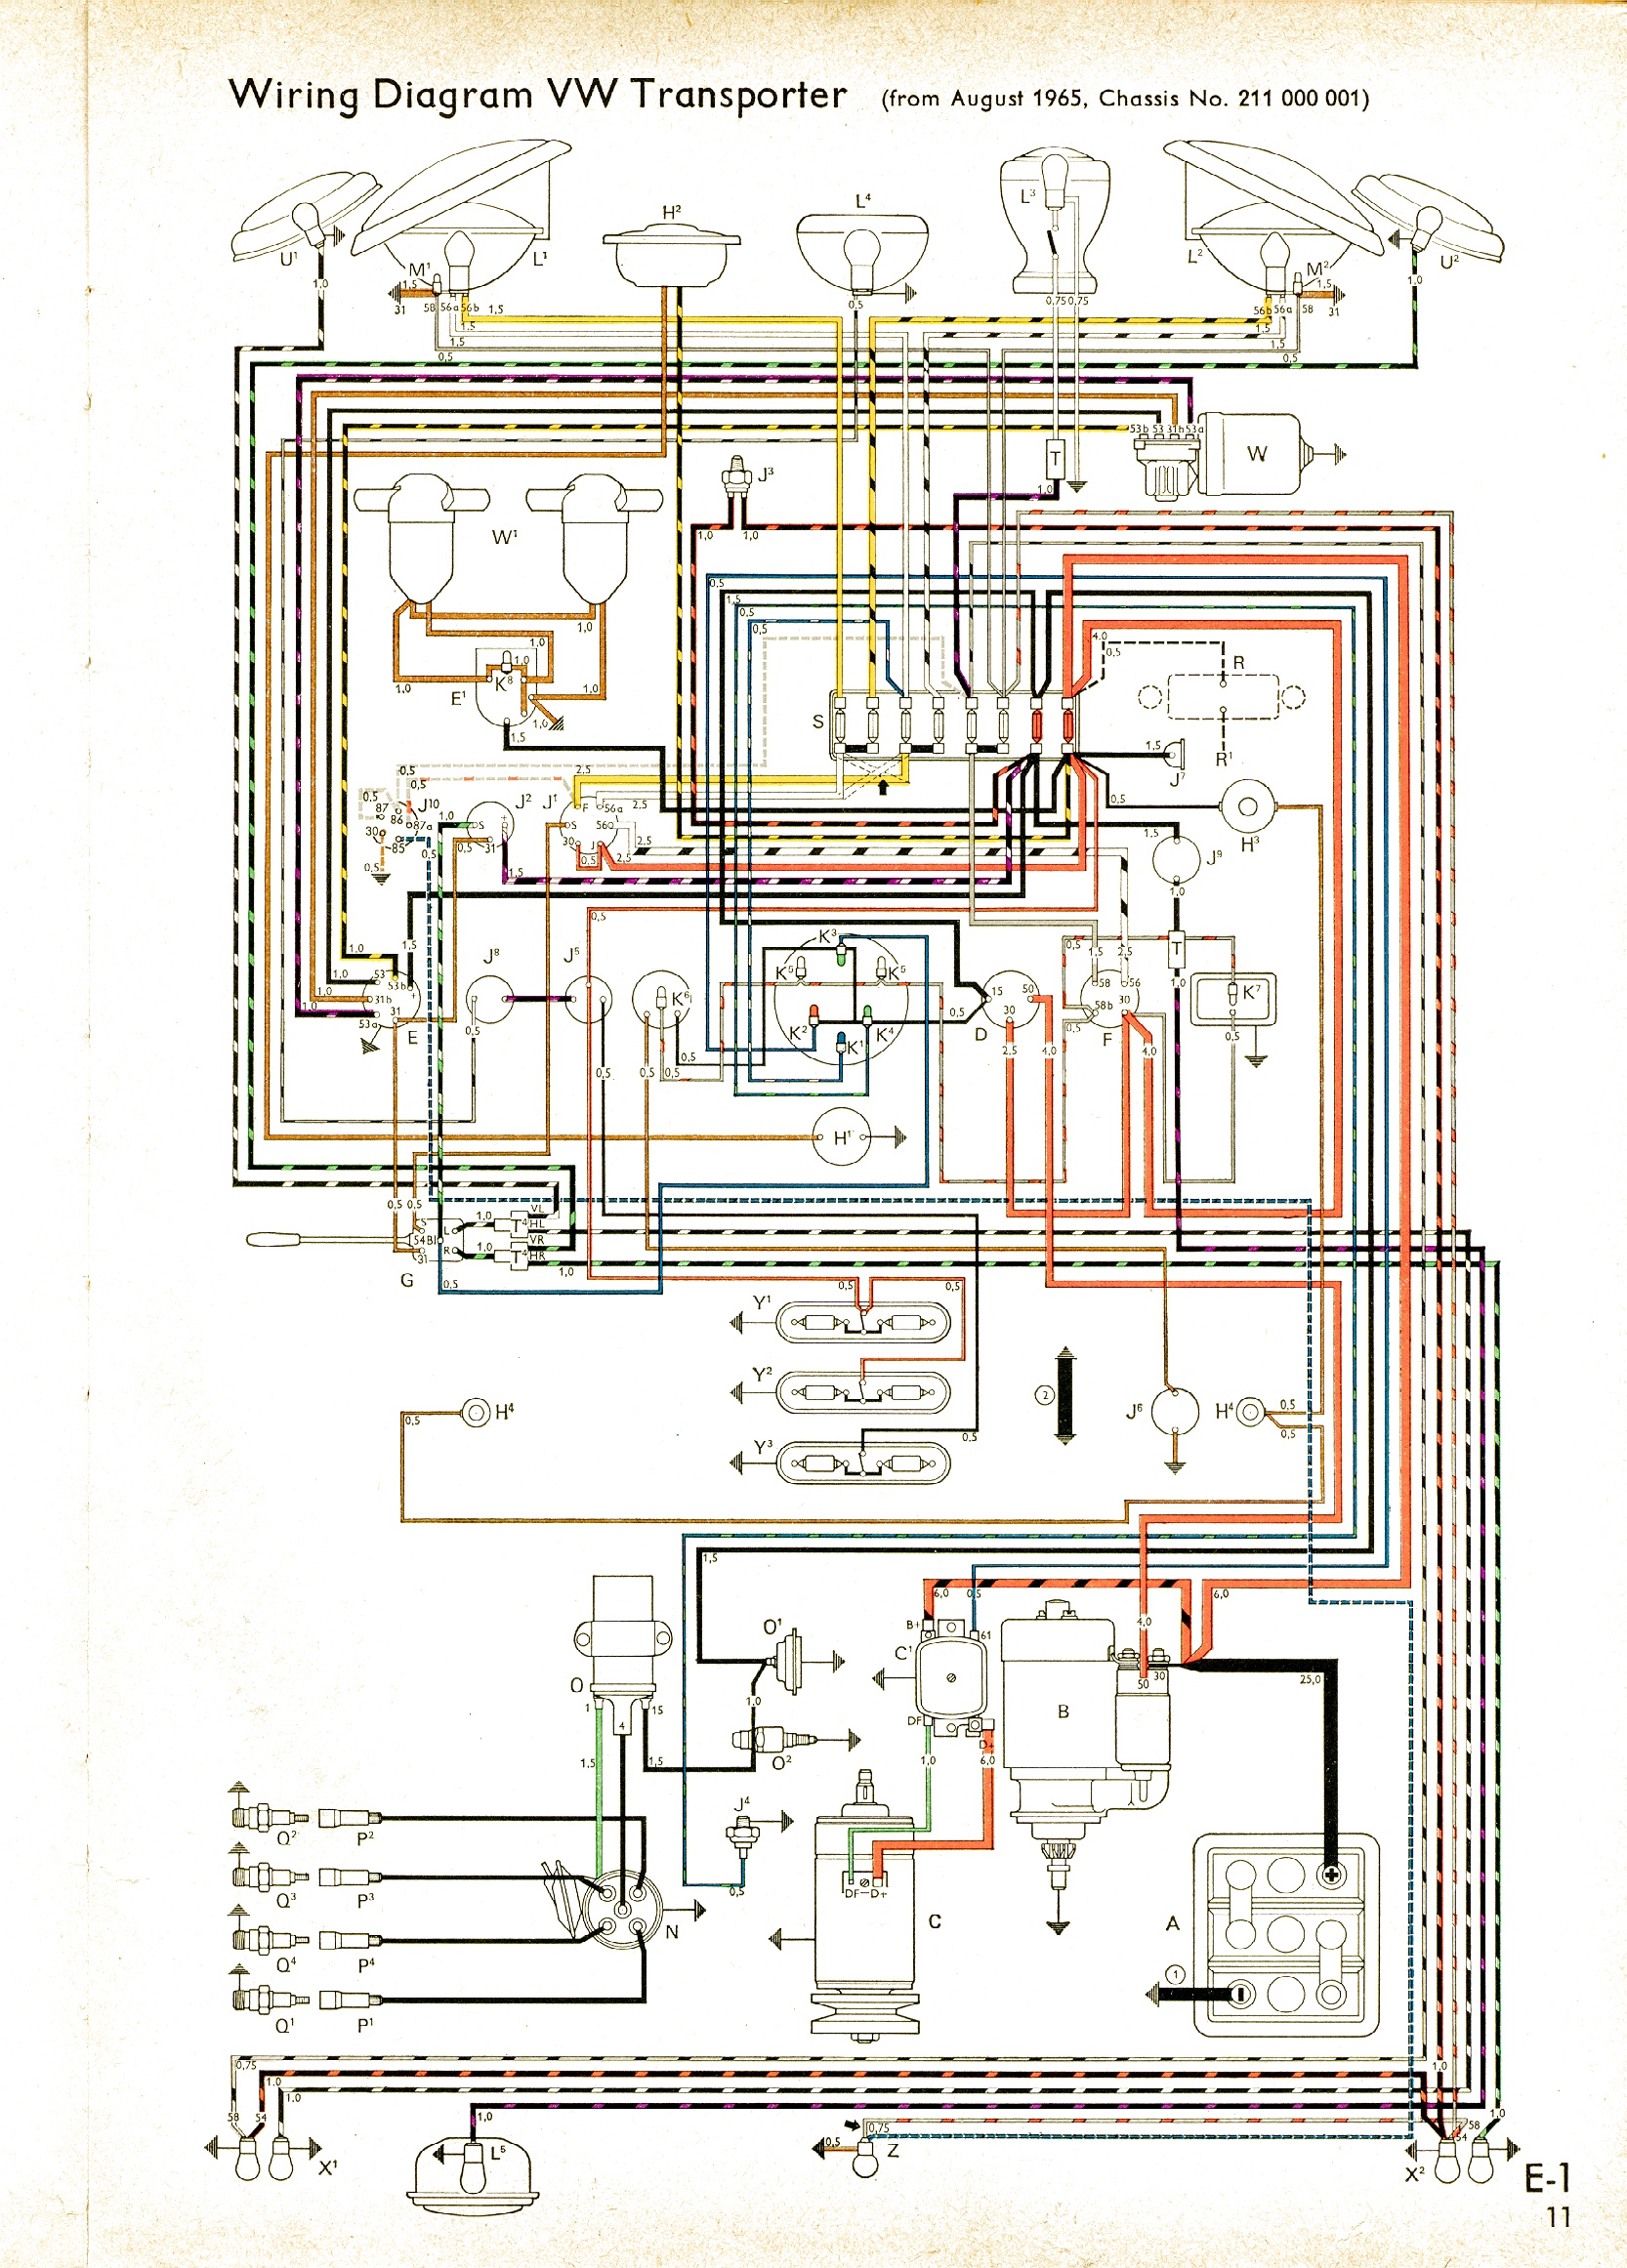 bus 65 vintagebus com vw bus (and other) wiring diagrams vw beetle 2002 radio wiring diagram at mifinder.co